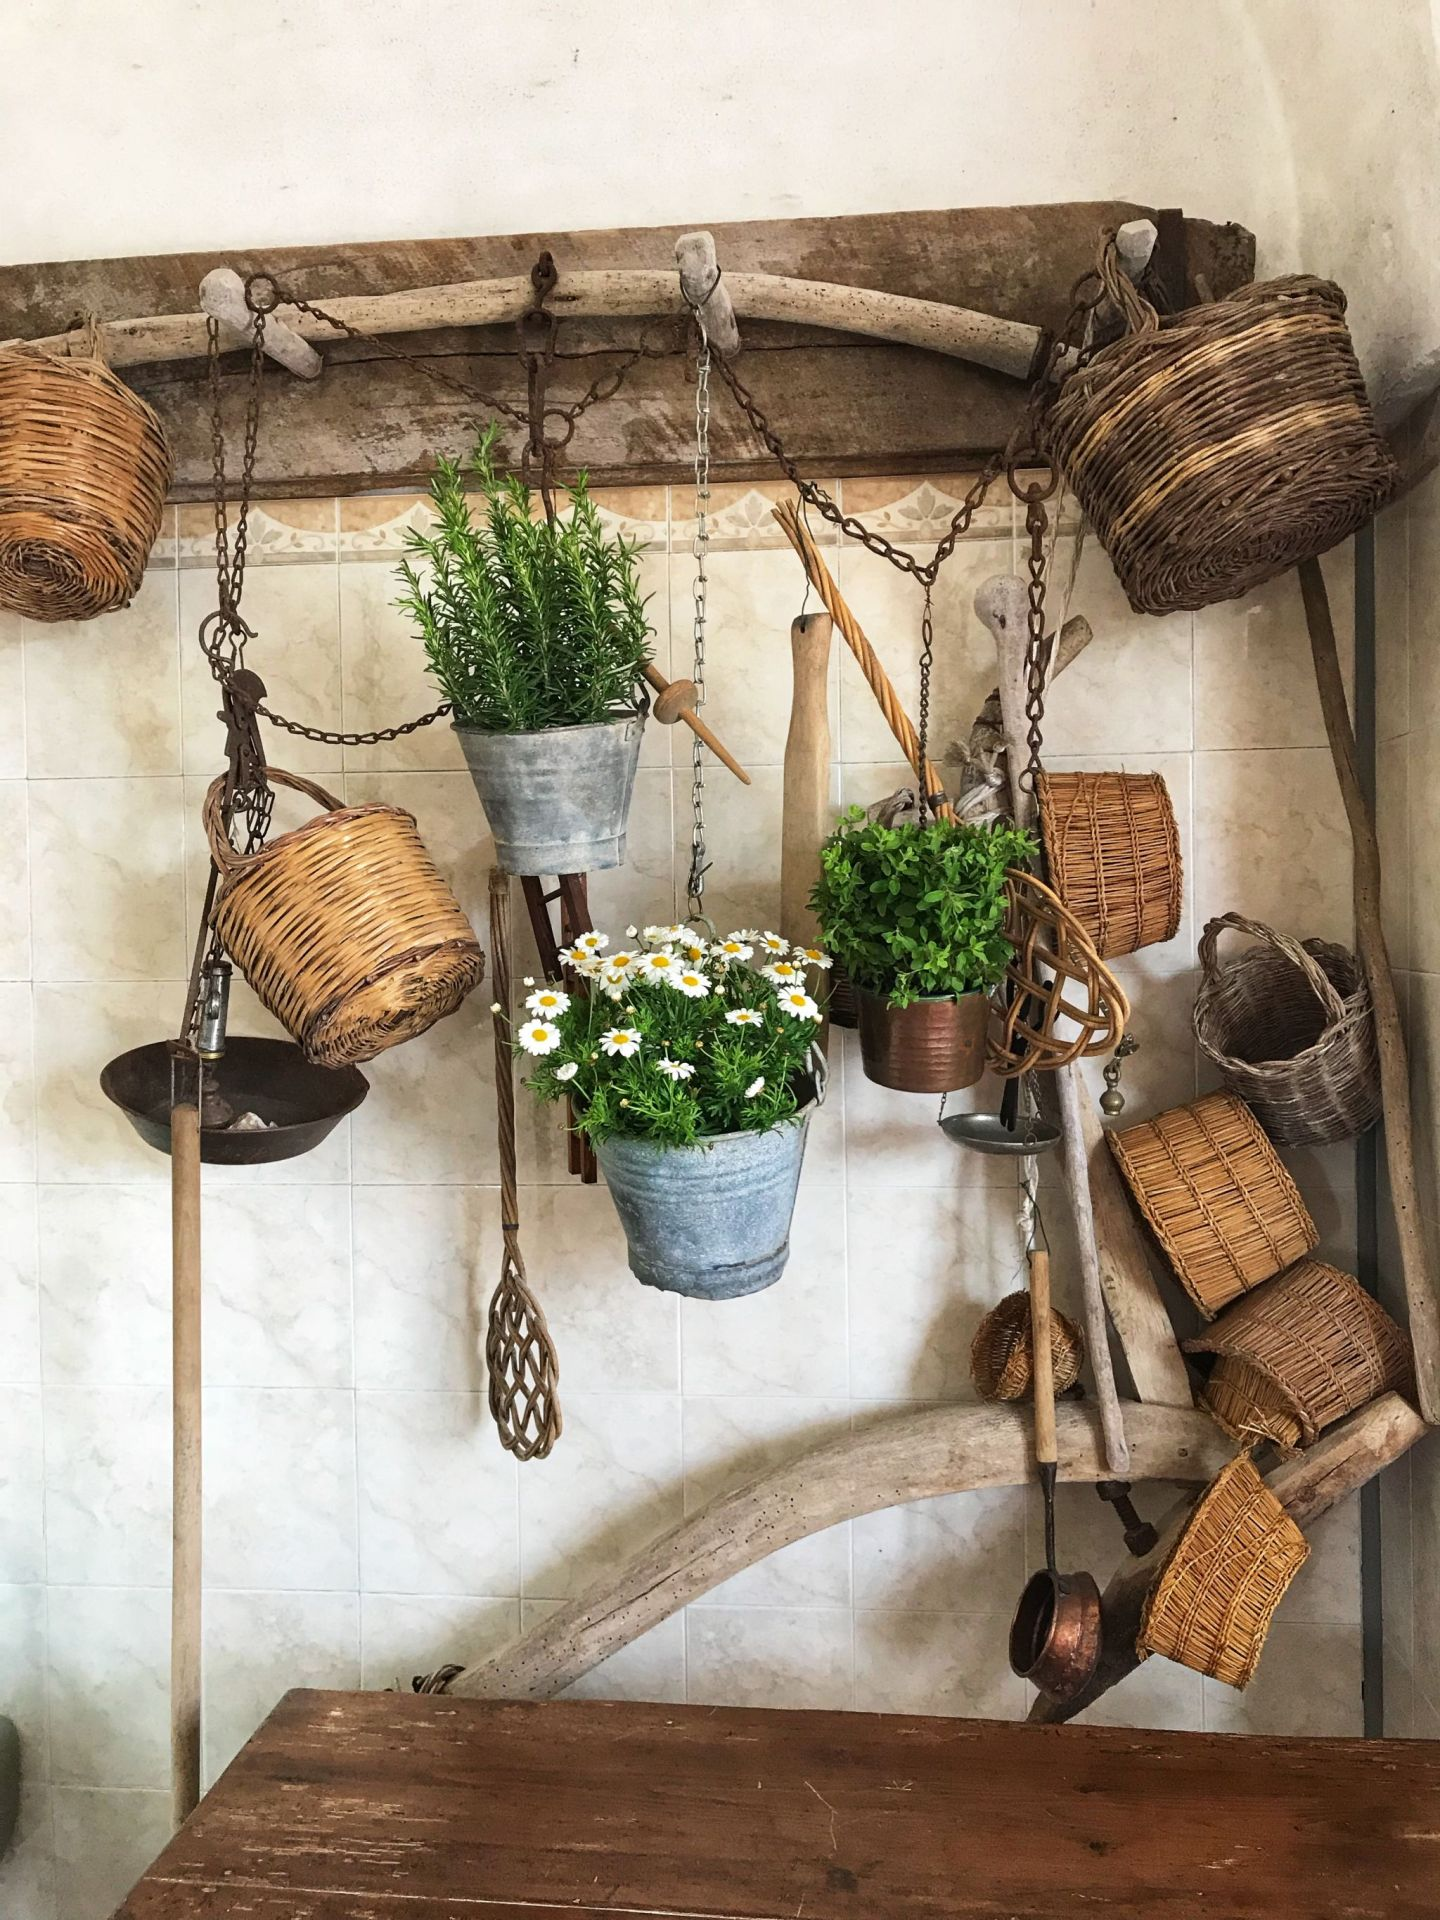 Rustic decor in a Puglian cheese masseria